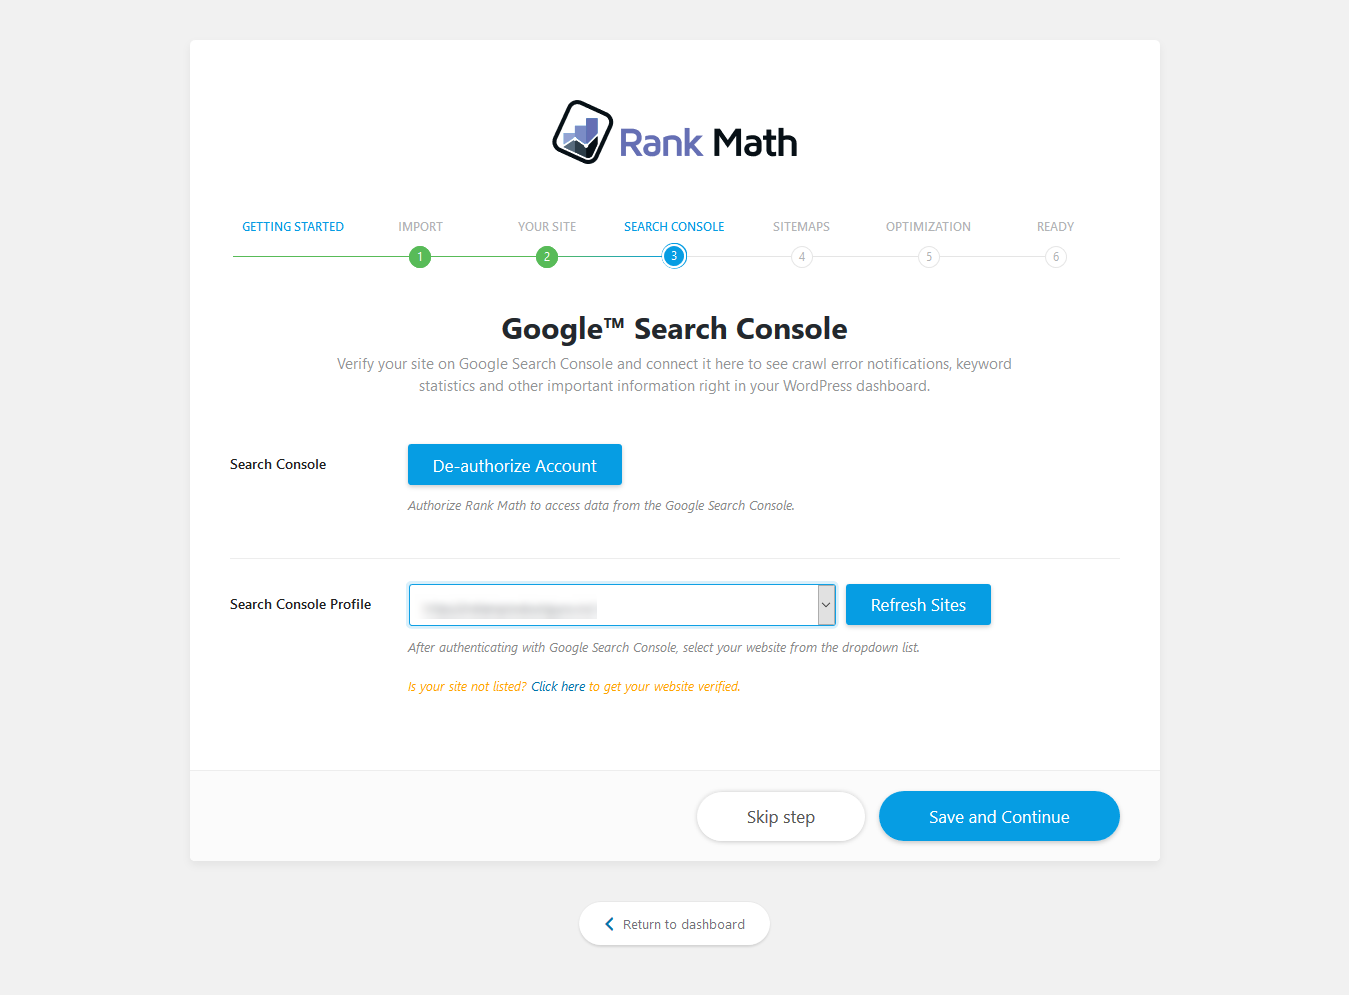 rank-math-search-console-verification-step